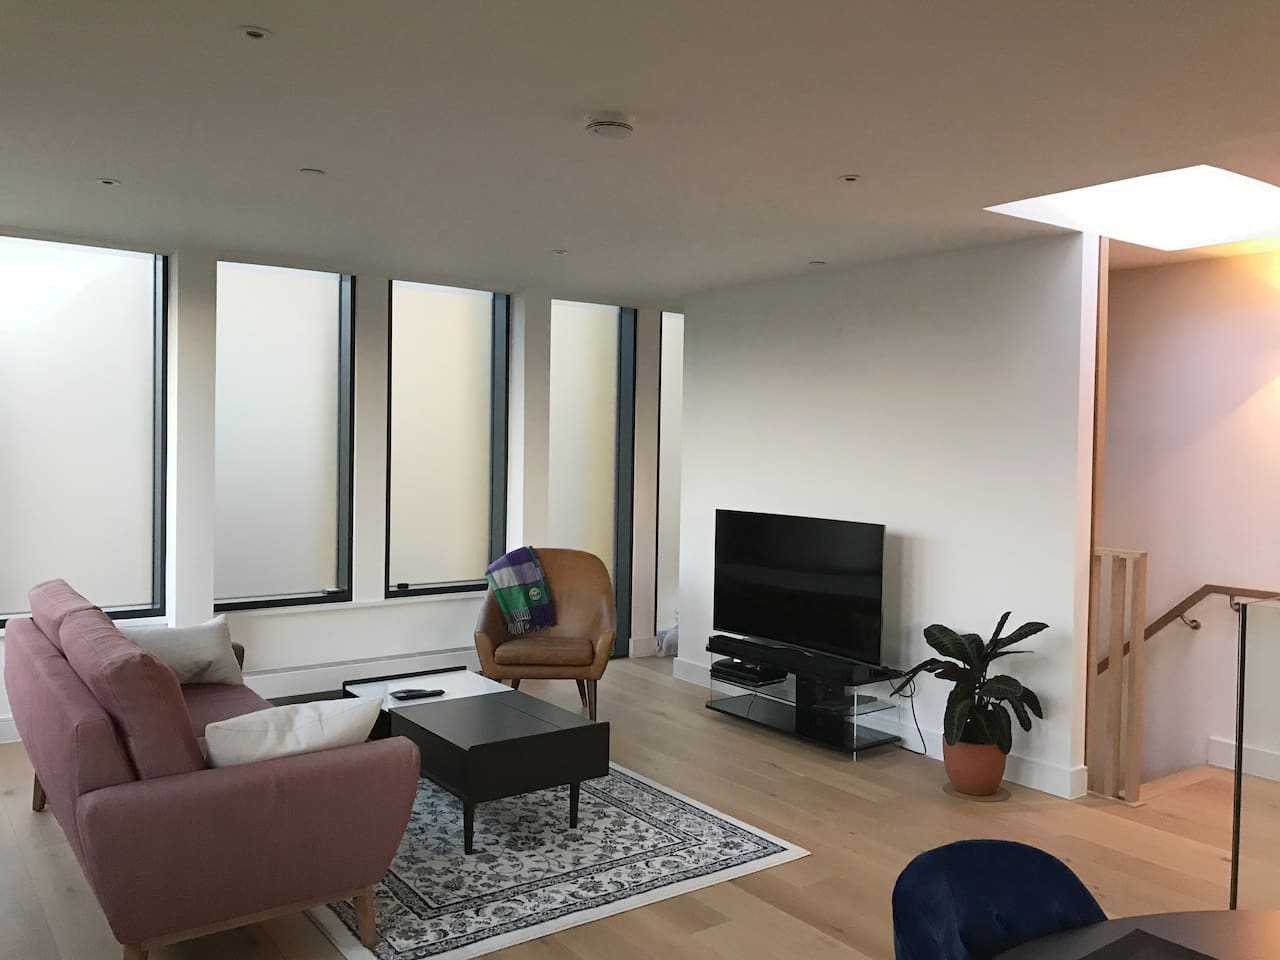 A generously sized home 15min walk from Tower Bridge